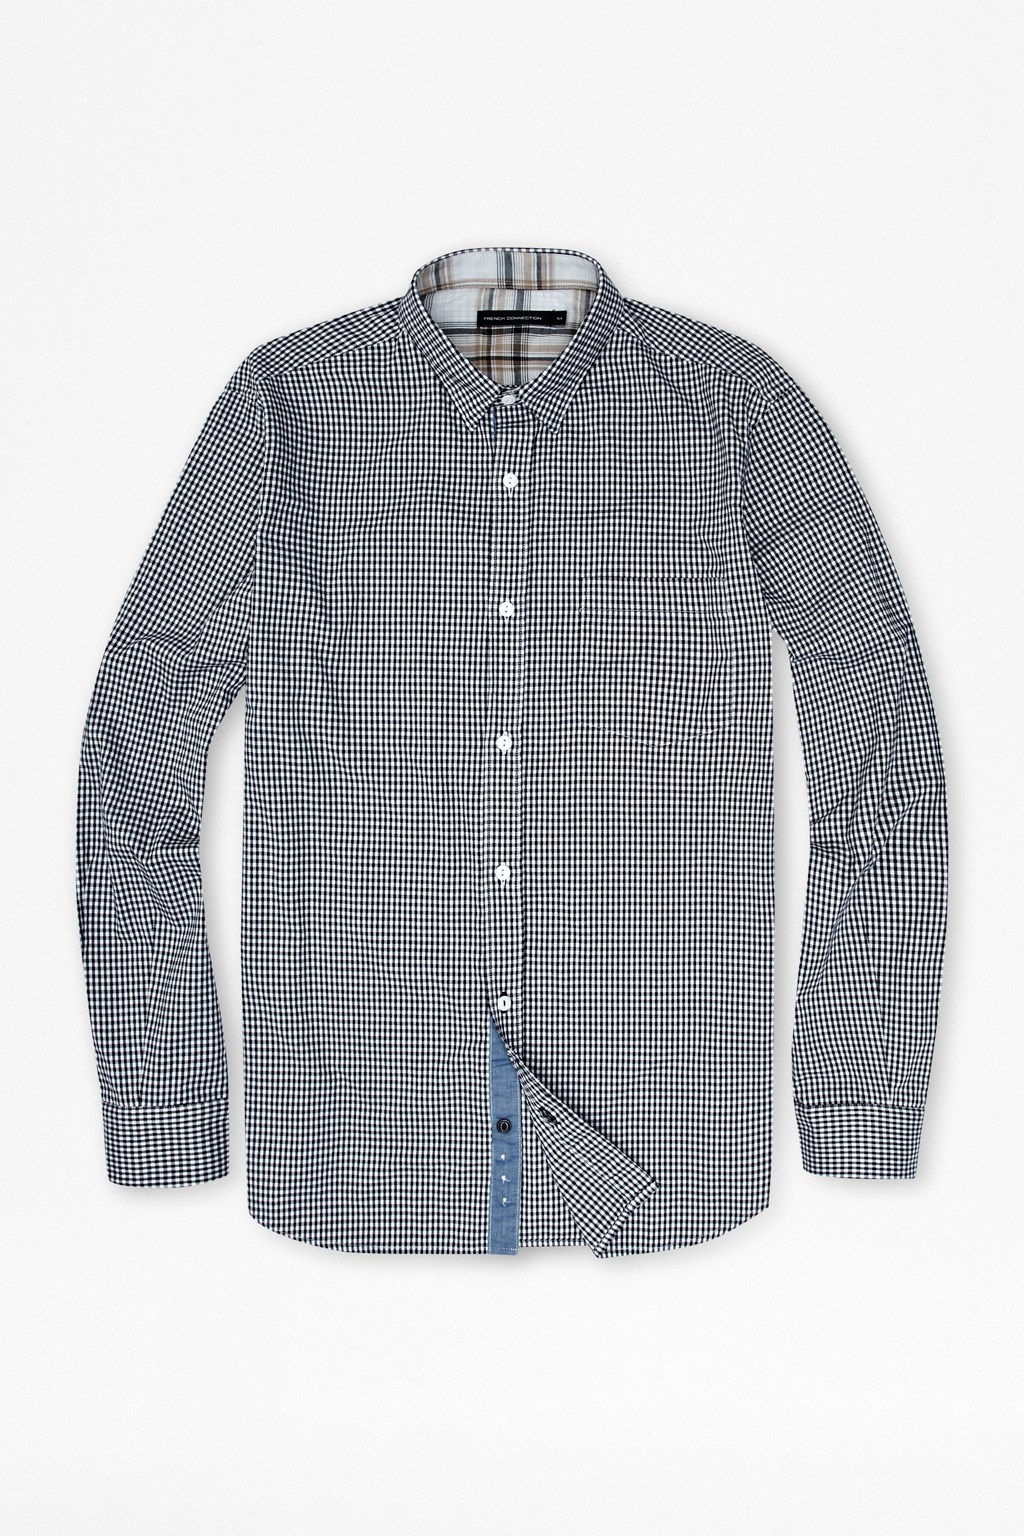 French Connection Wax Gingham Shirt £50